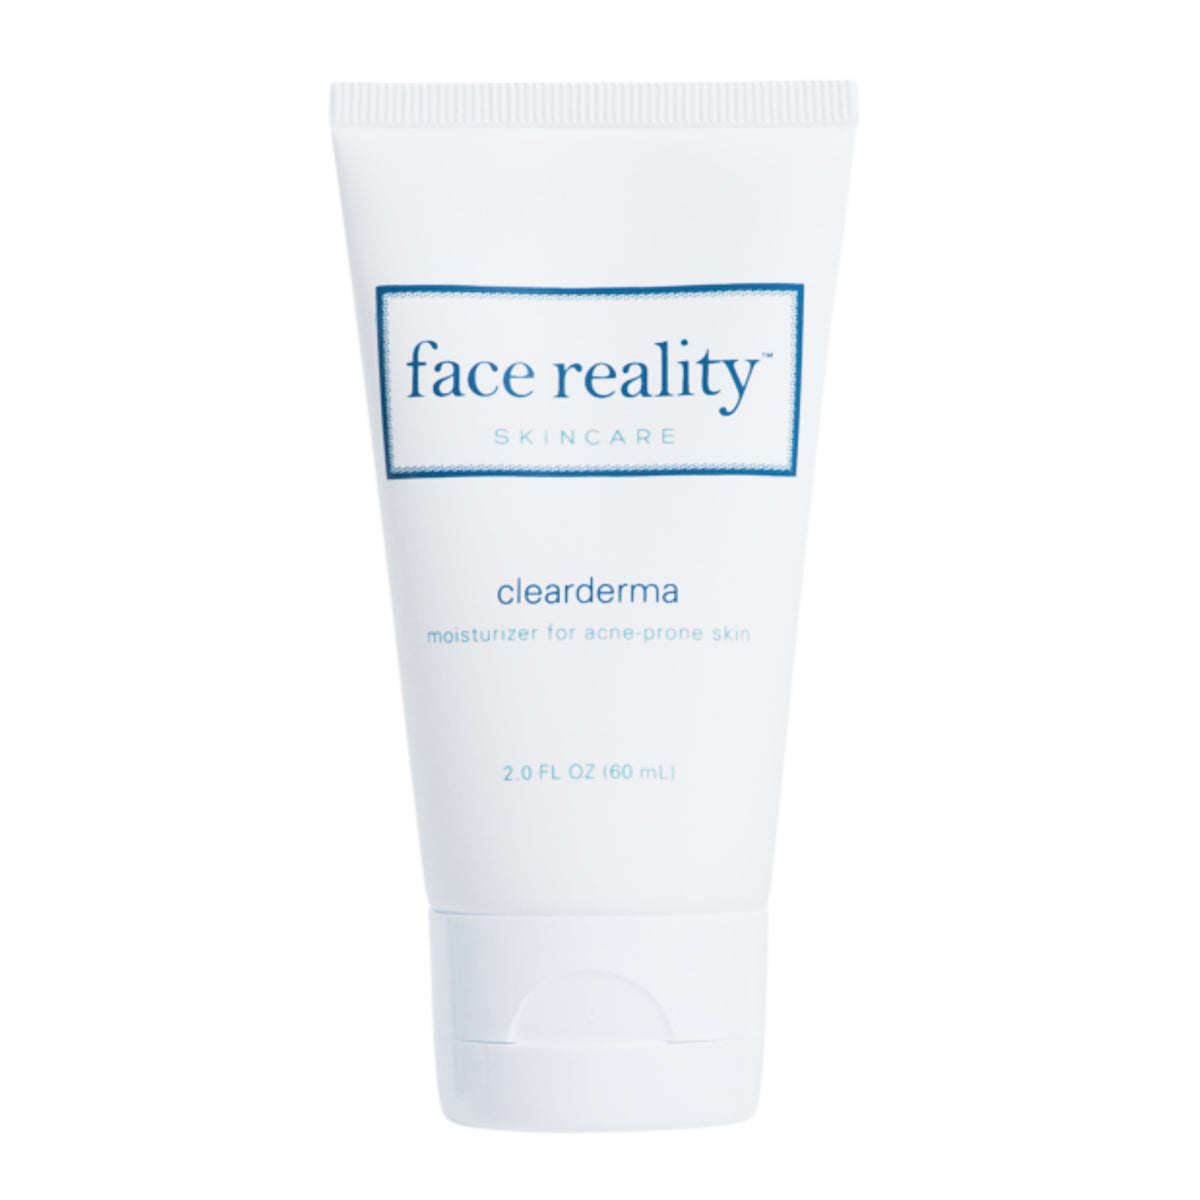 FACE REALITY - Clearderma - Beauty Nook